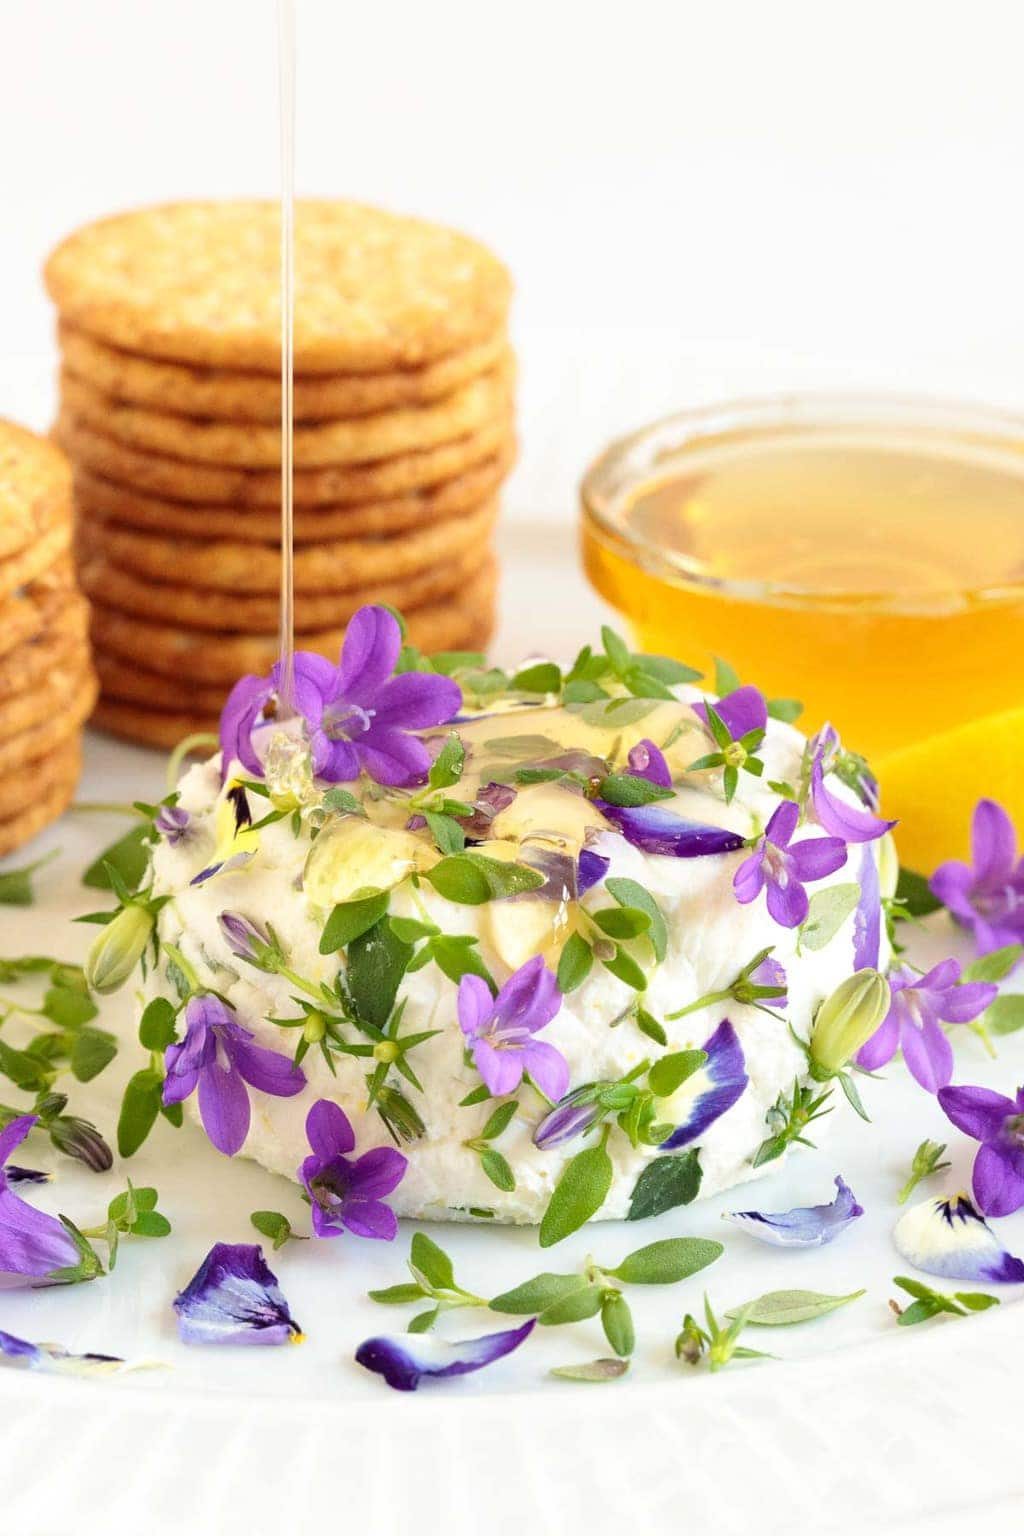 Vertical photo of an Easy Goat Cheese Appetizer covered in edible flowers with stacks of crackers and a bowl of honey in the background.